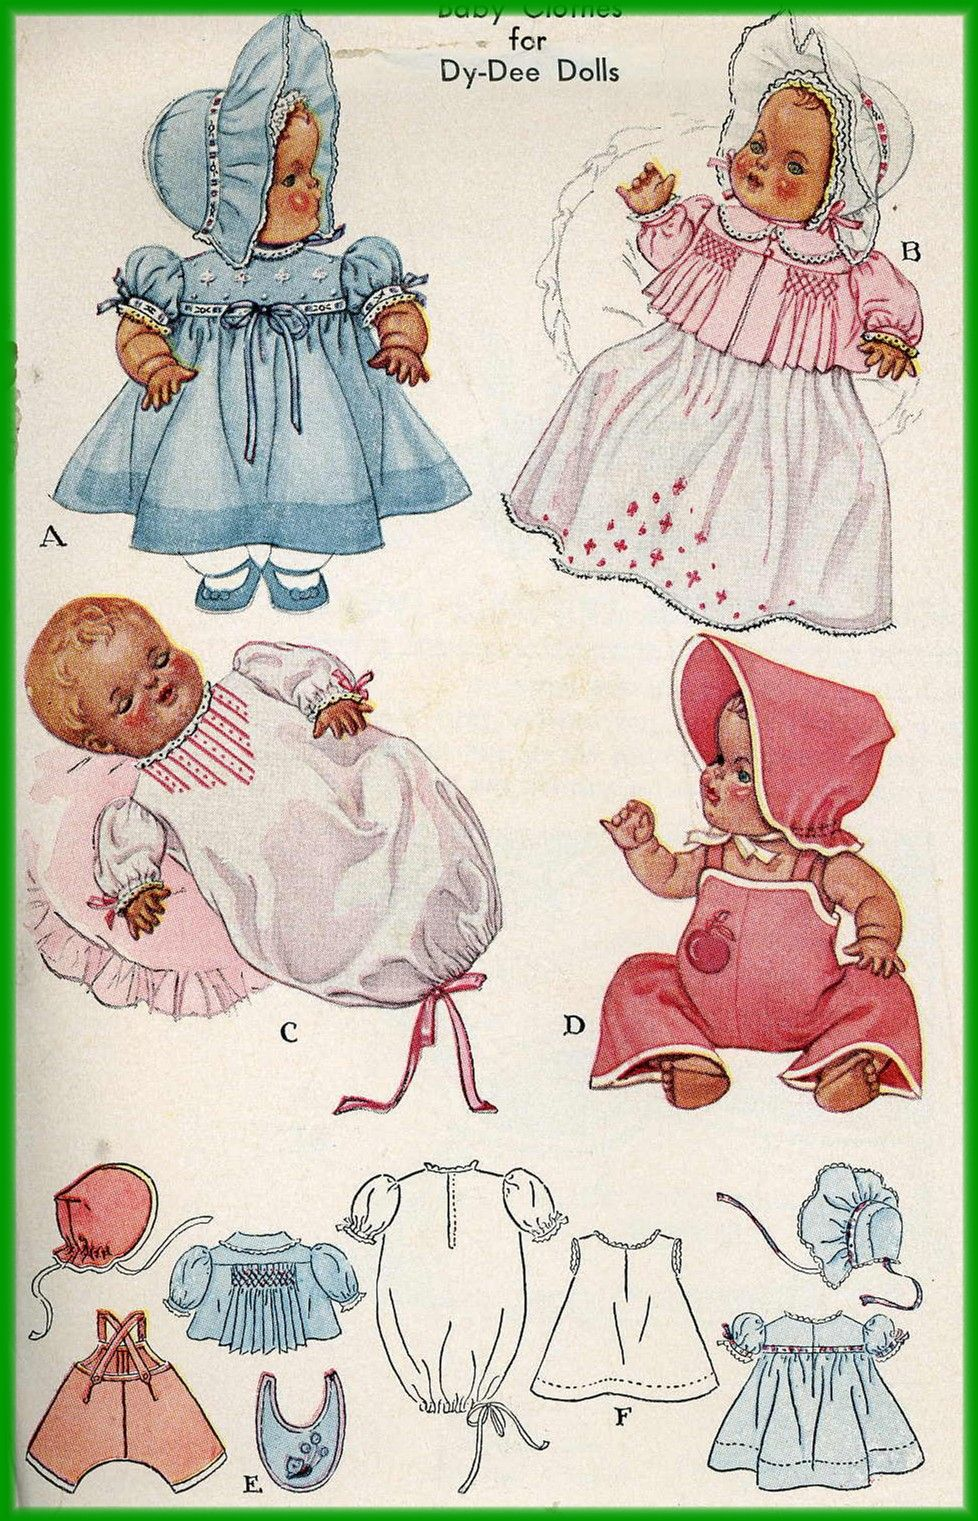 1940s Doll Clothes Pattern For 20 Inch Dy Dee Doll By Effanbee 713 Doll Sewing Patterns Baby Doll Pattern Doll Clothes Patterns